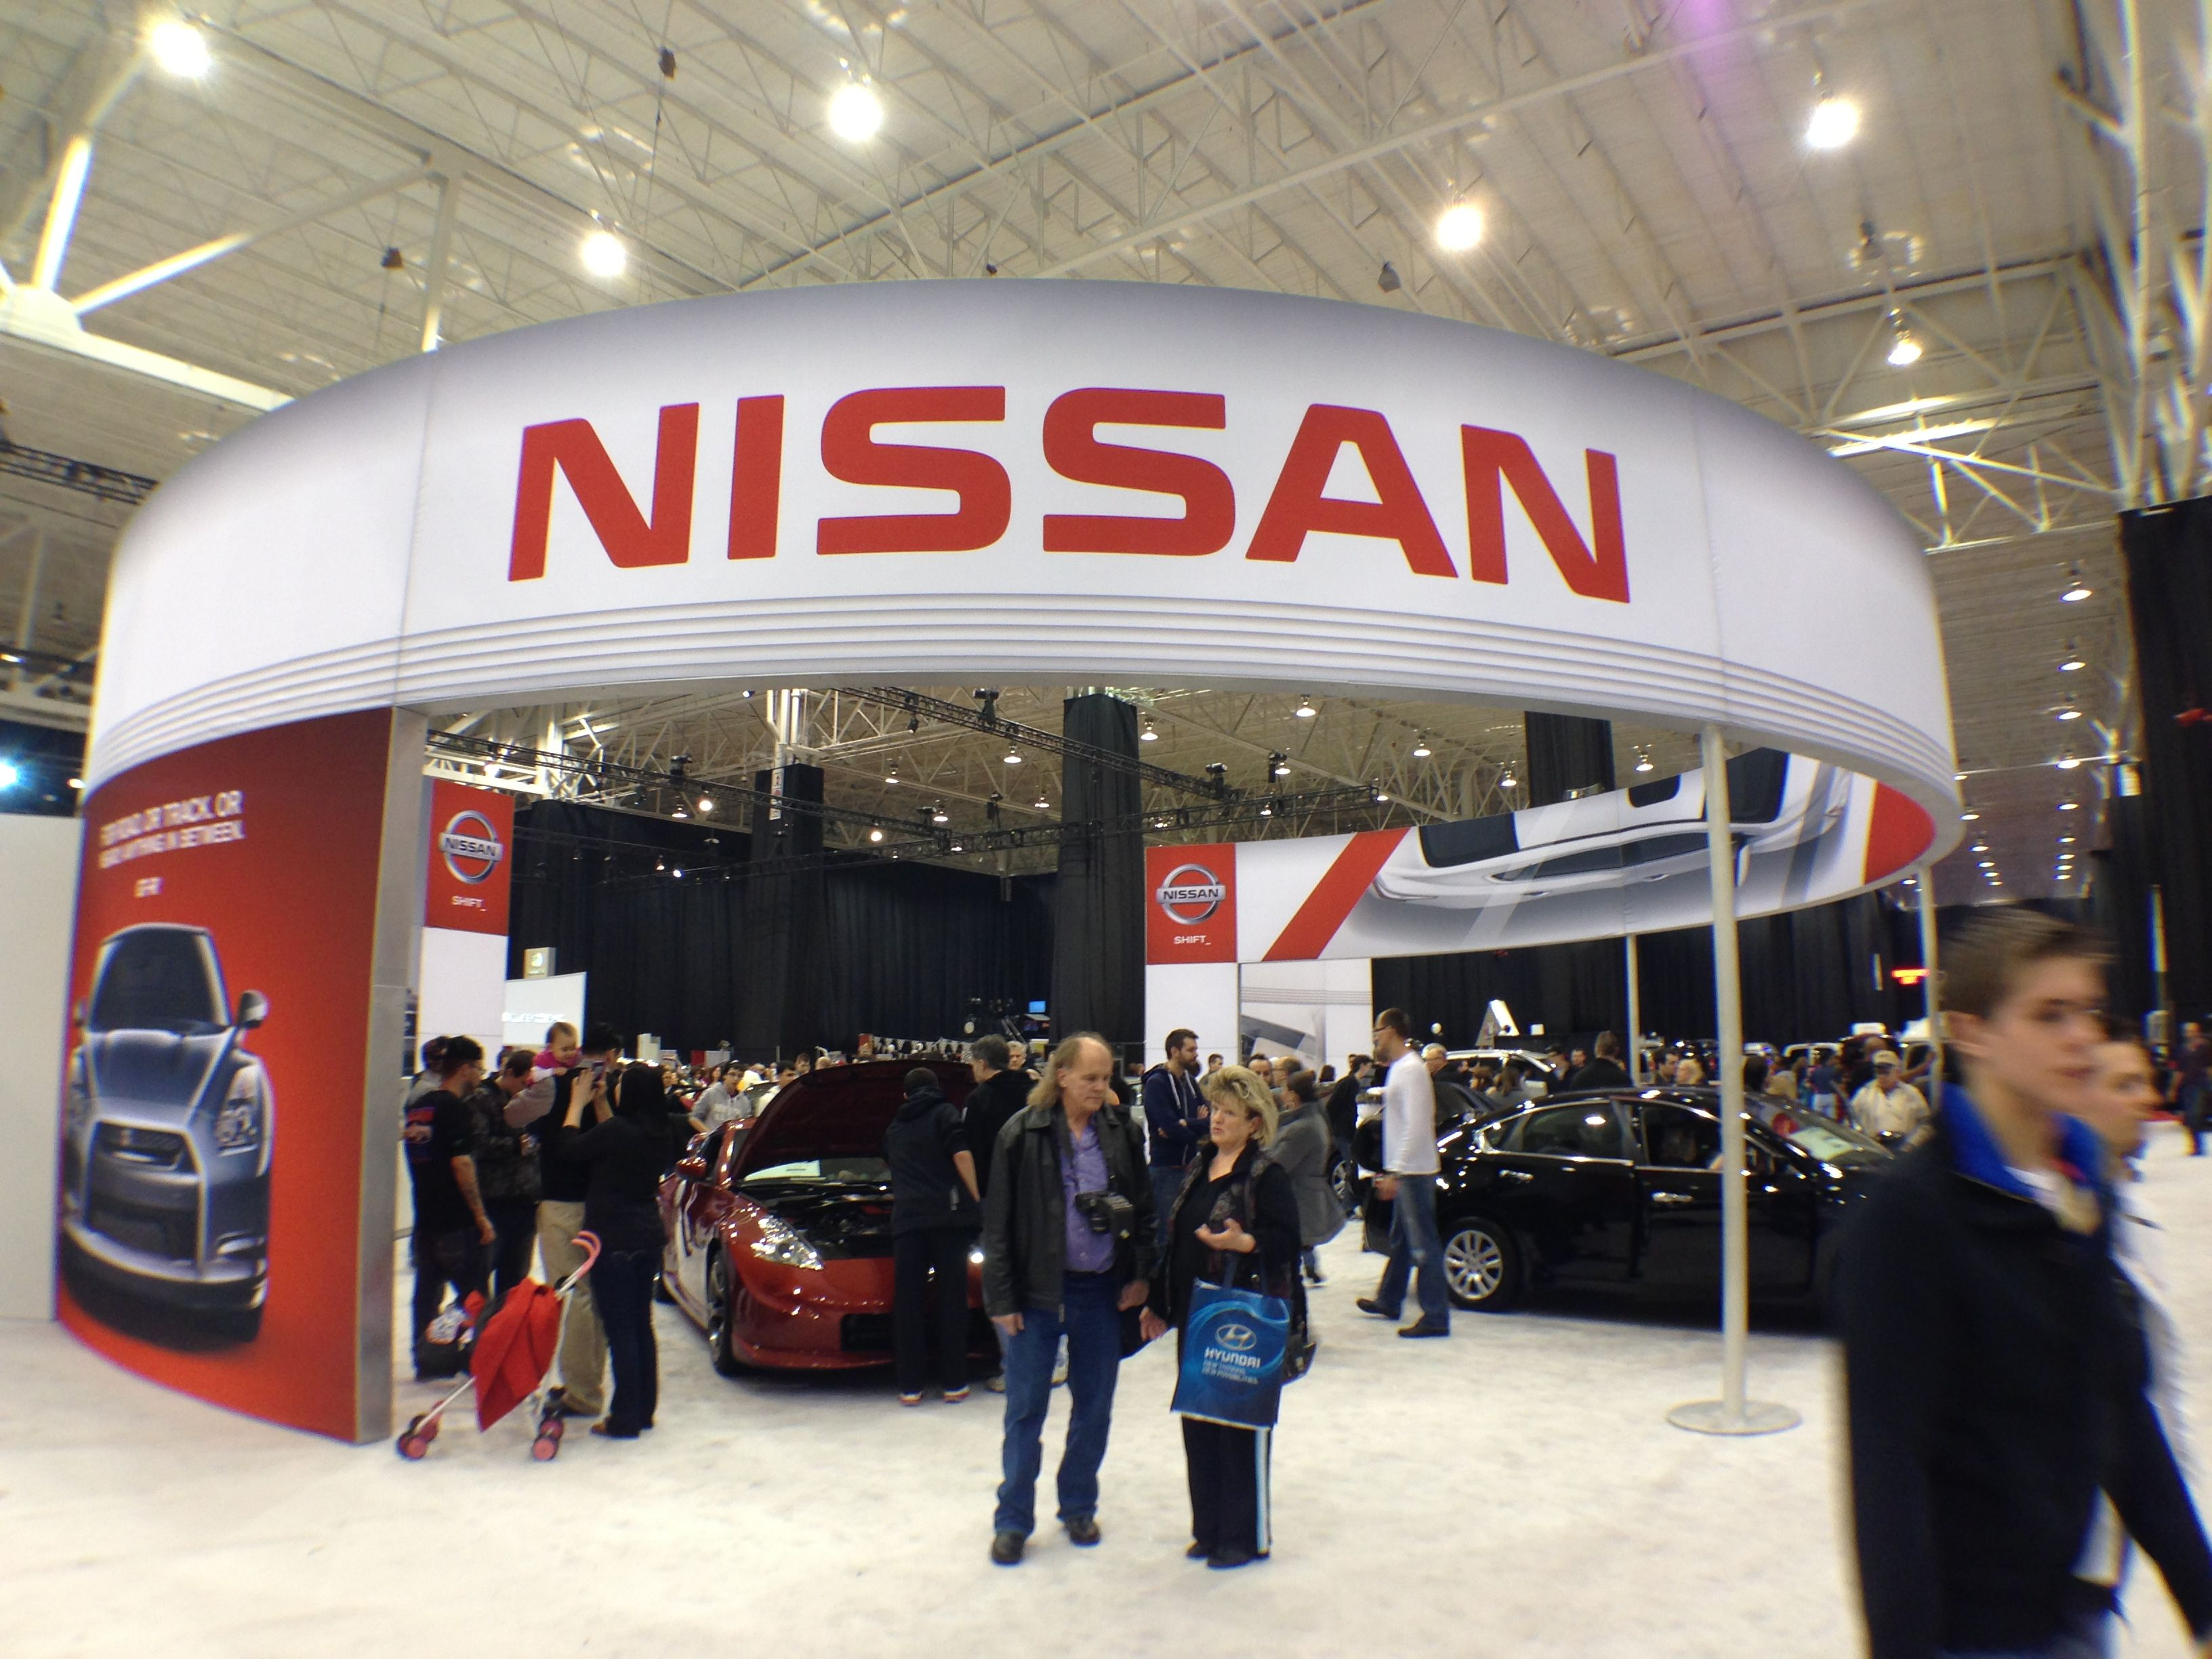 a47dccf9e158ba7c62bb3a9e82aa2050 - How To Get Free Tickets To The Cleveland Auto Show